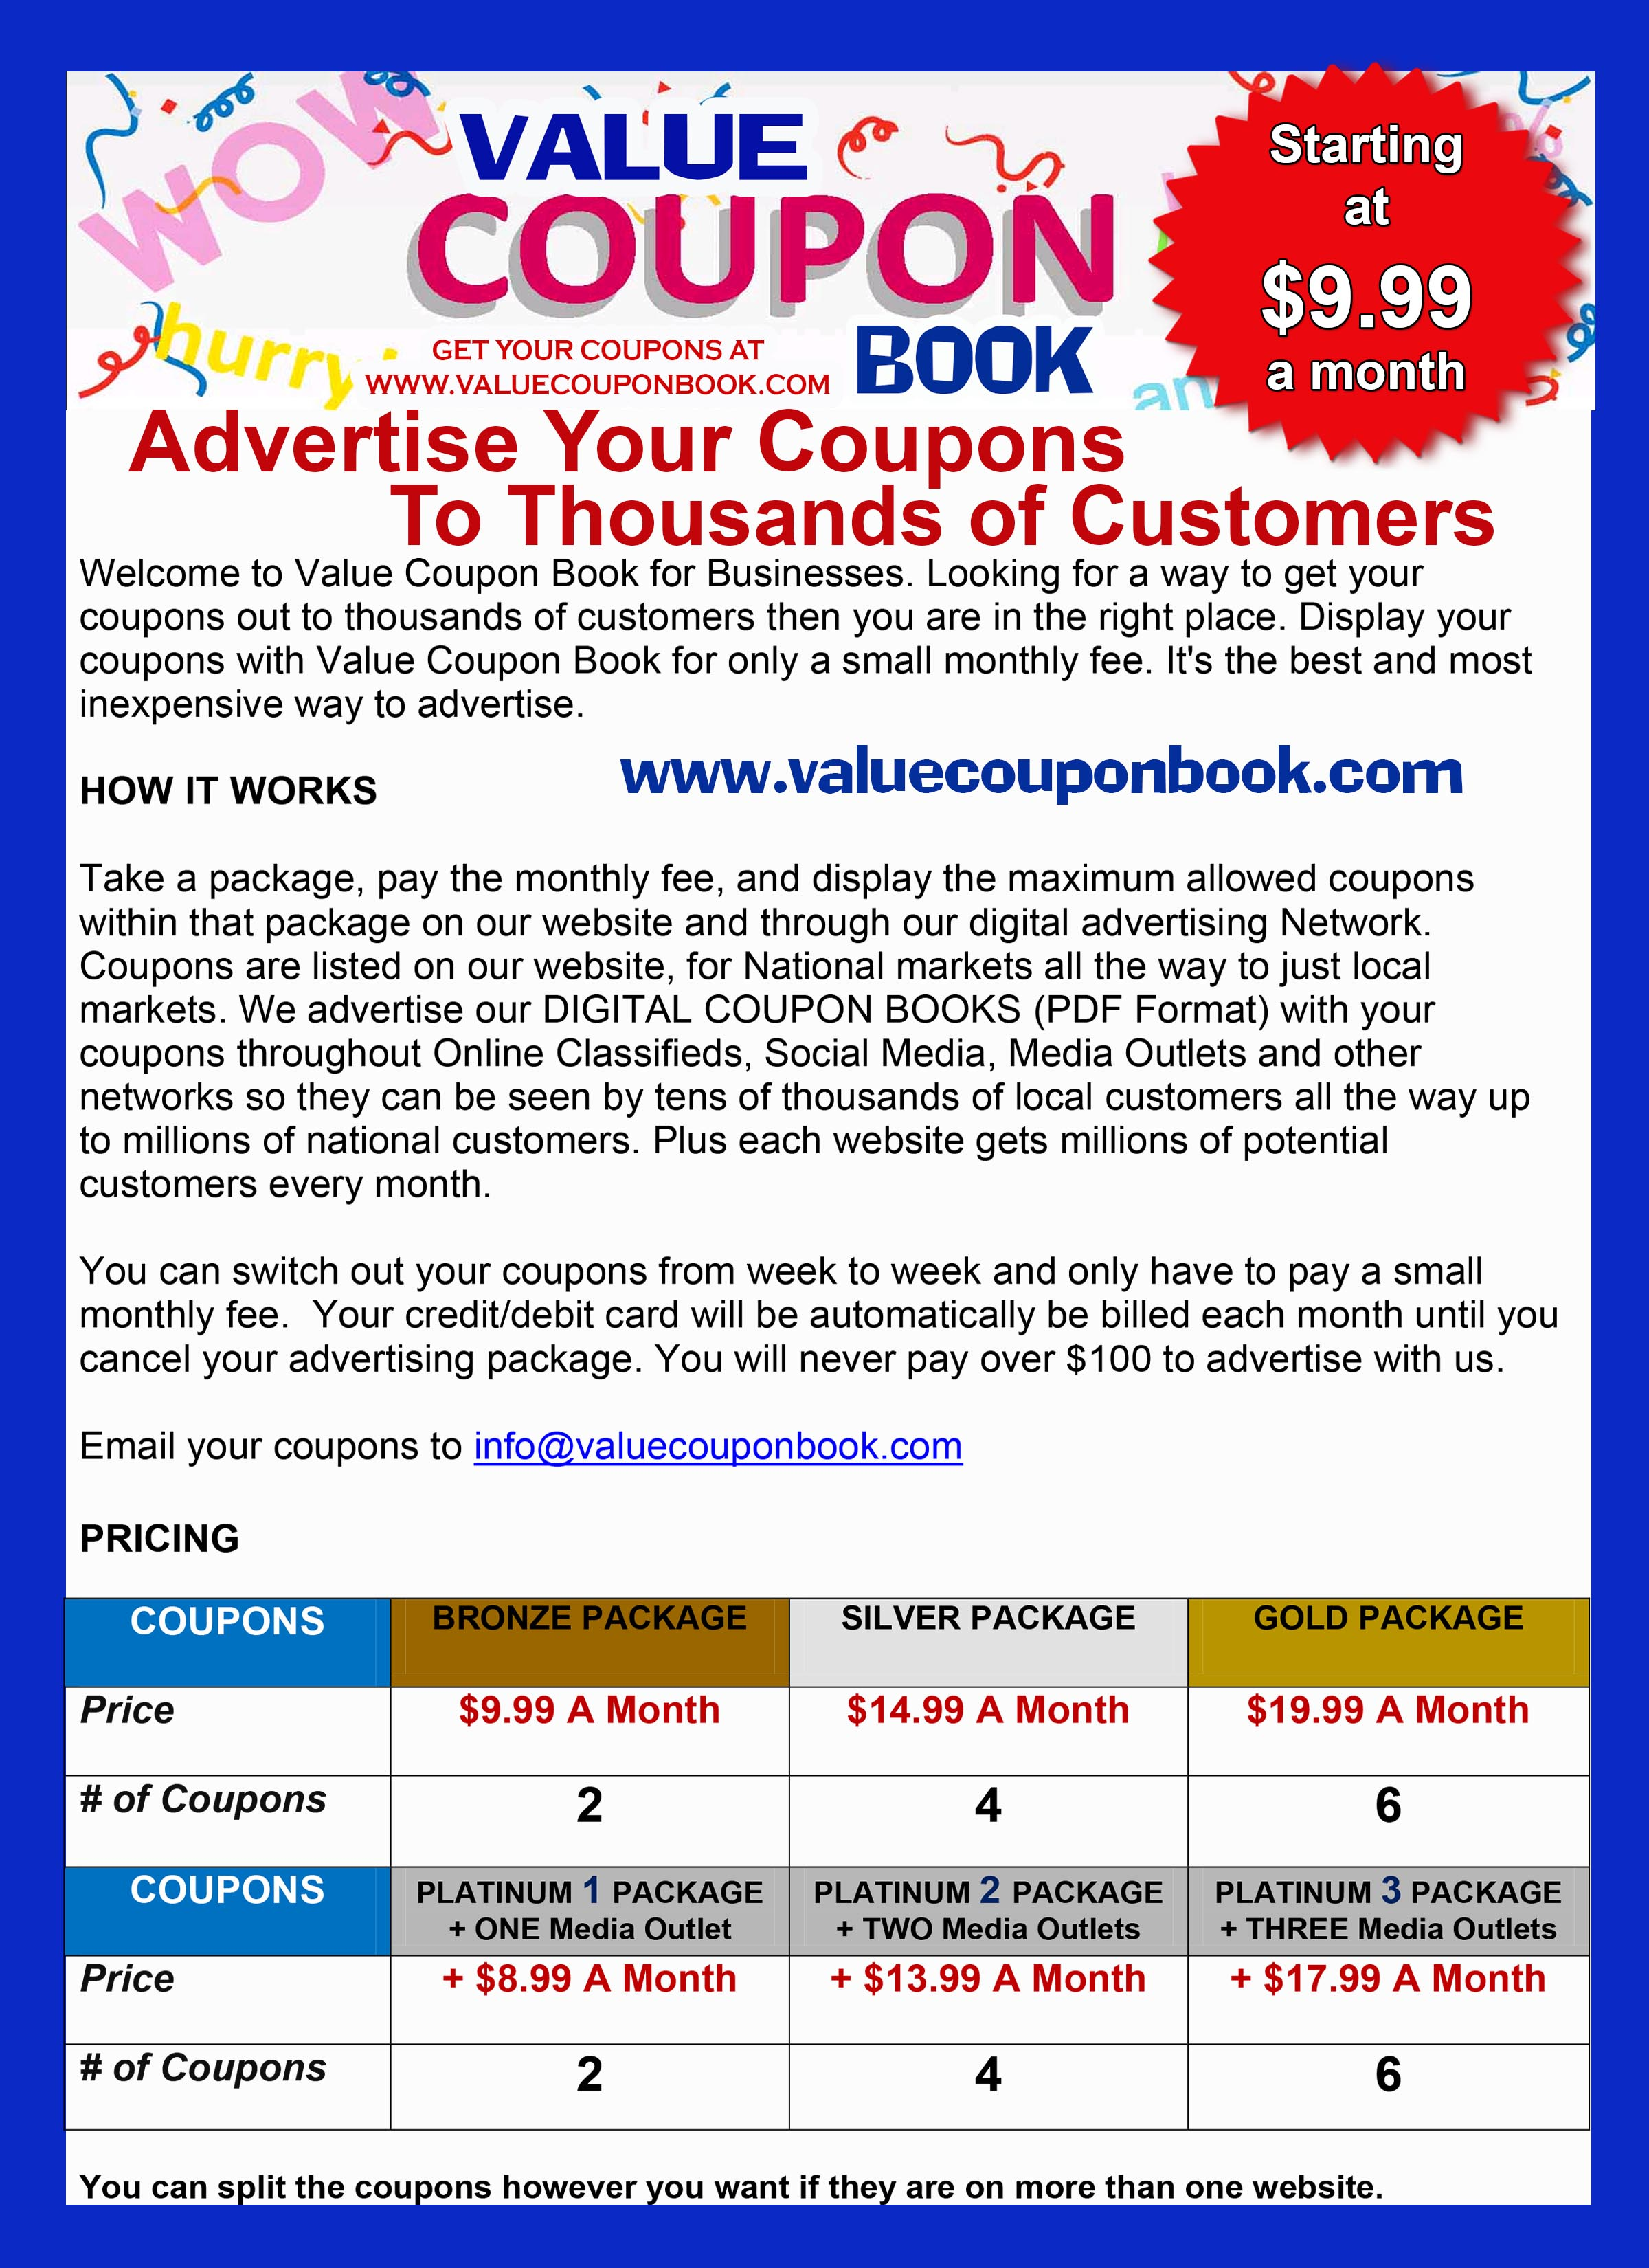 Reach a Million Customers for 9.99 |Coupon  Advertising